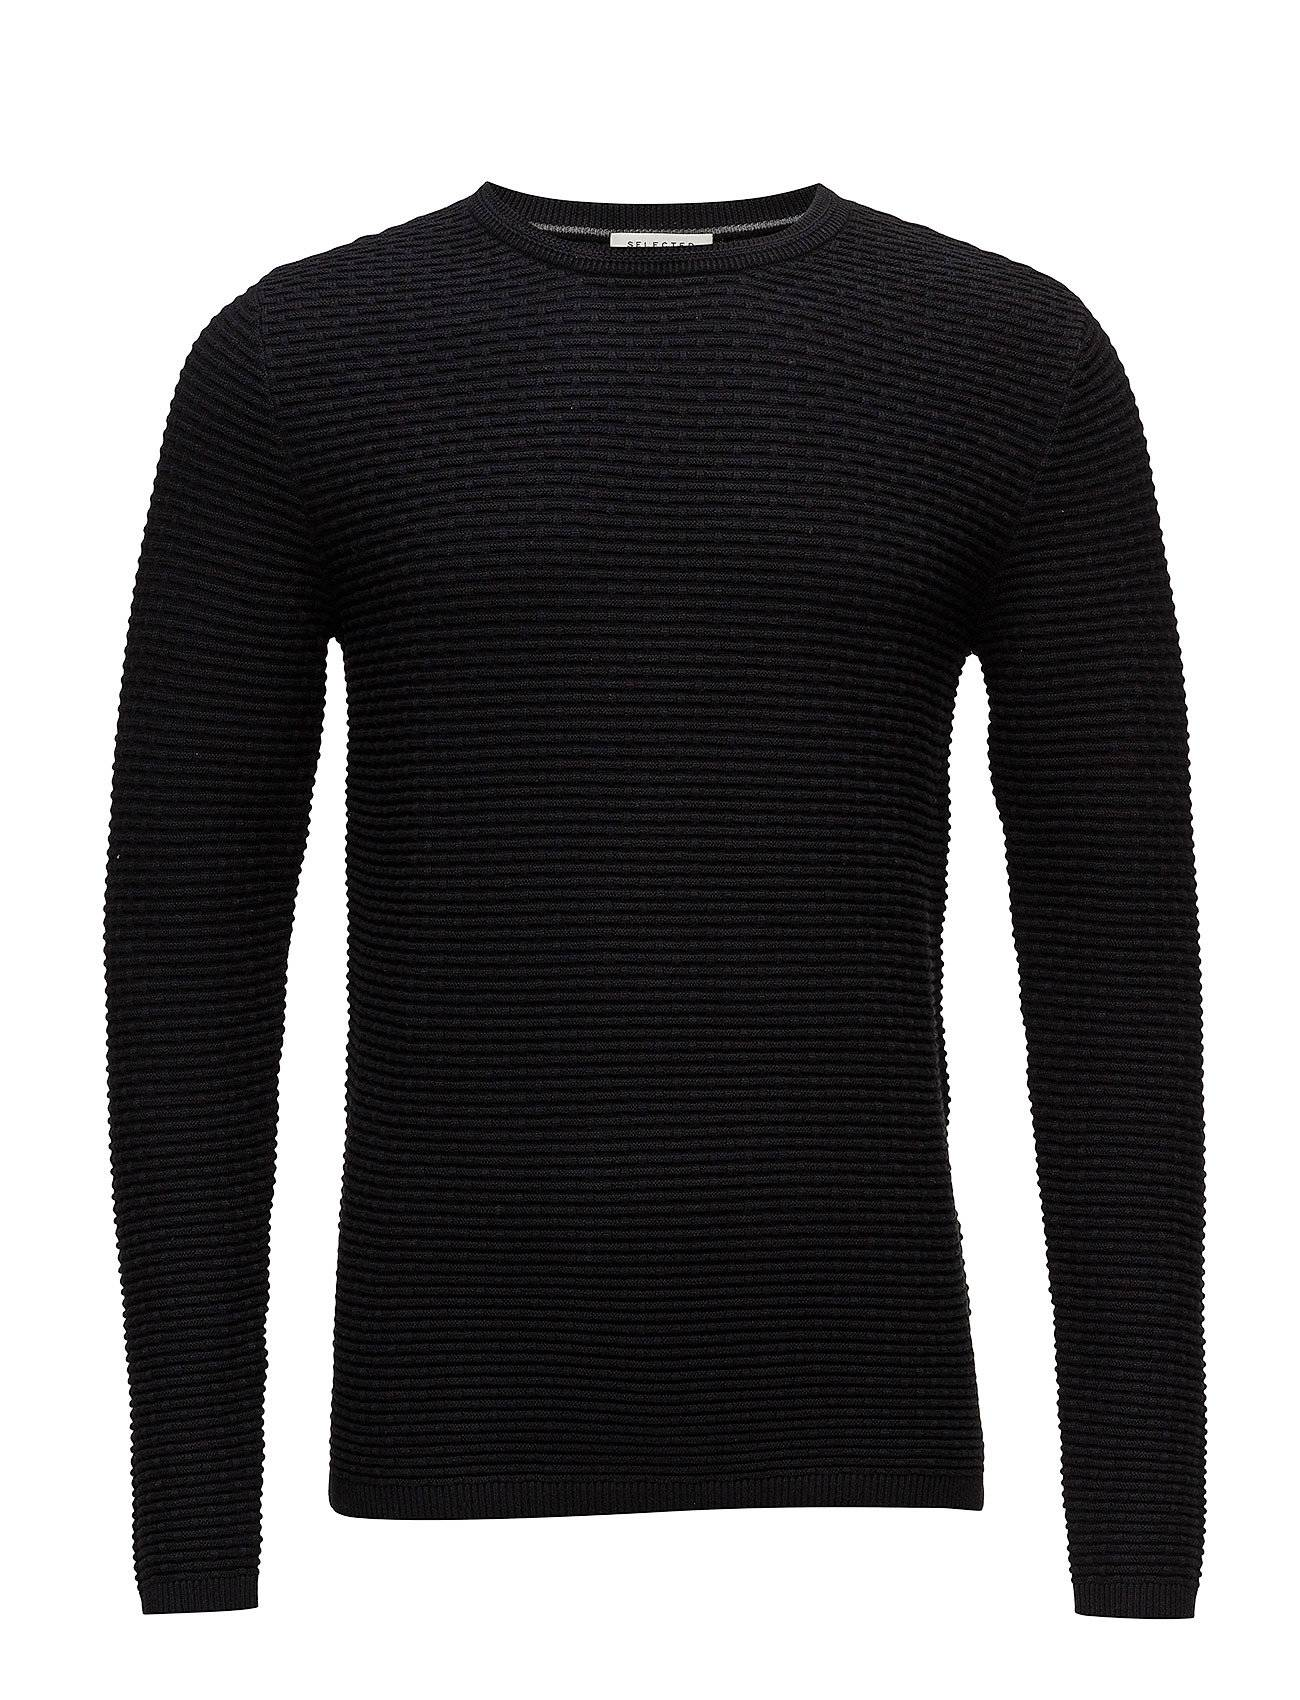 Selected Homme Shhnewdean Crew Neck Noos